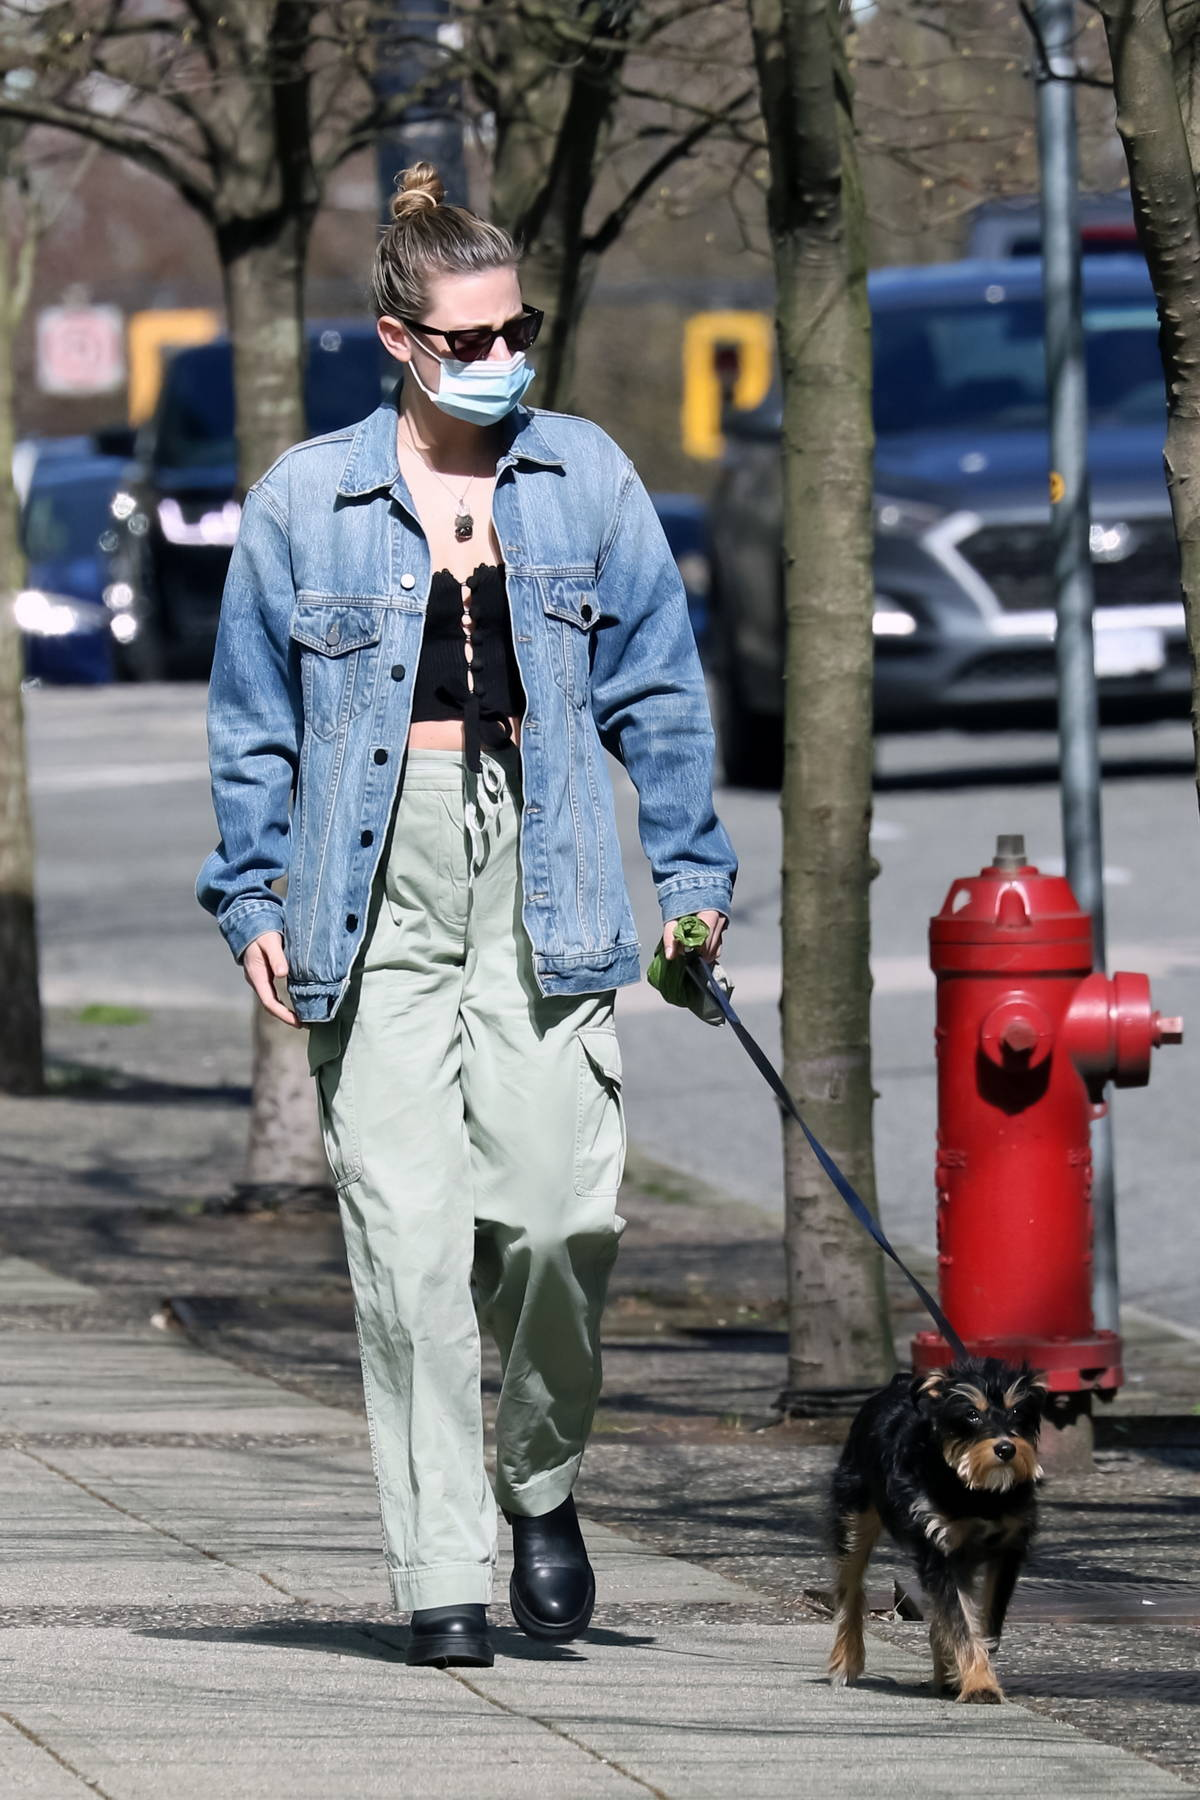 Lili Reinhart steps out to walk her wearing a denim jacket and light green pants in Vancouver, Canada